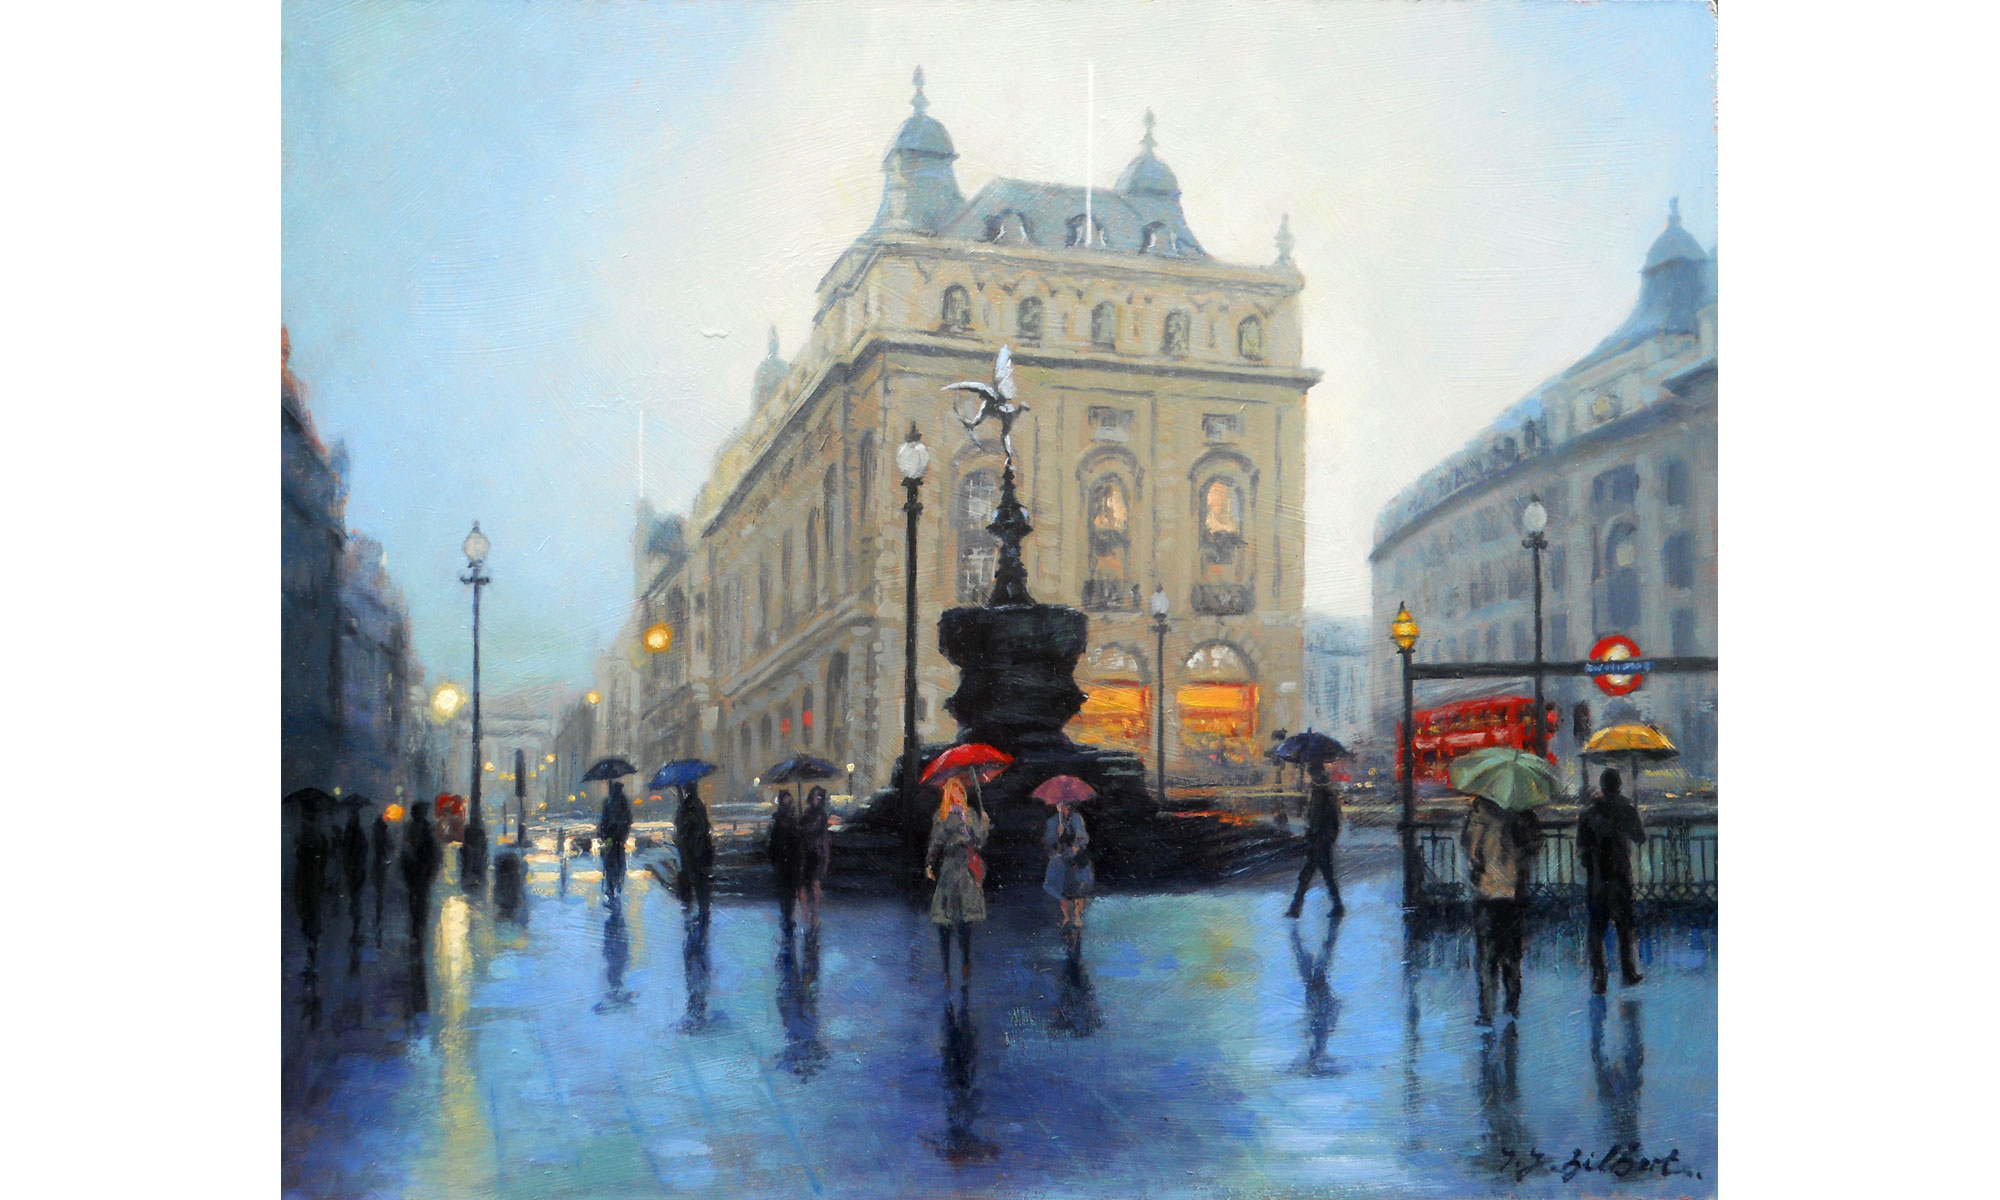 Piccadilly, Rain Painting by Terence J Gilbert Oil on Board